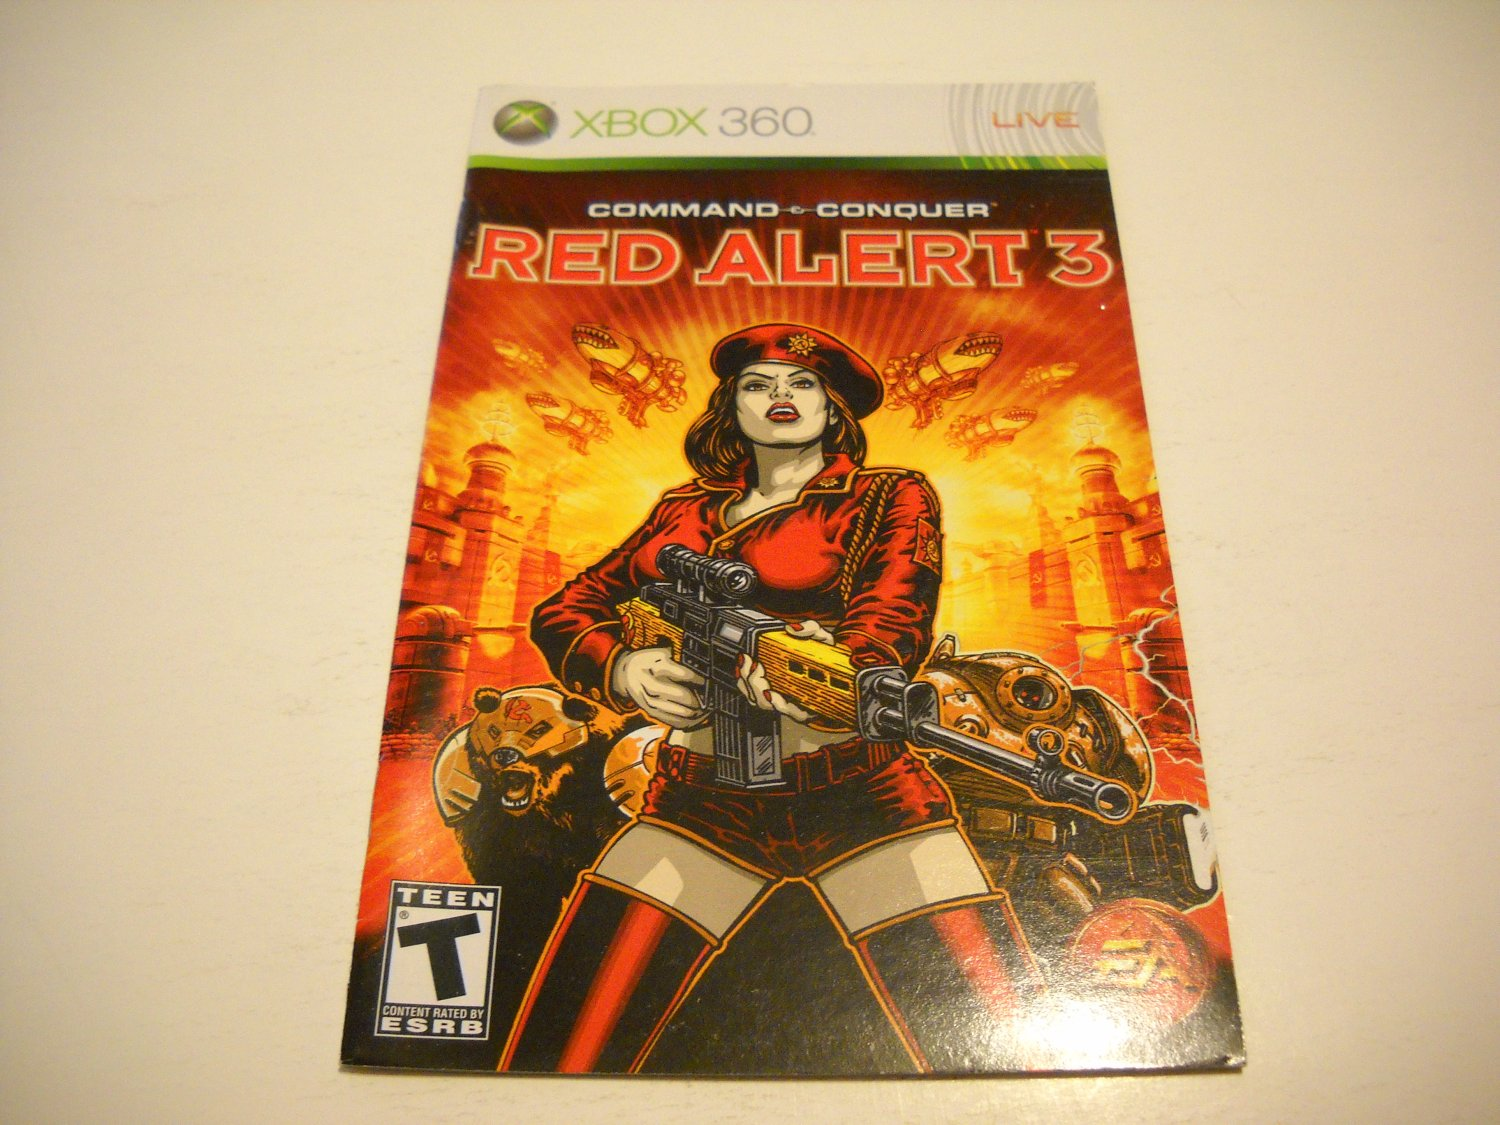 Manual ONLY ~  for Command and Conquer Red Alert 3   - Xbox 360 Instruction Booklet